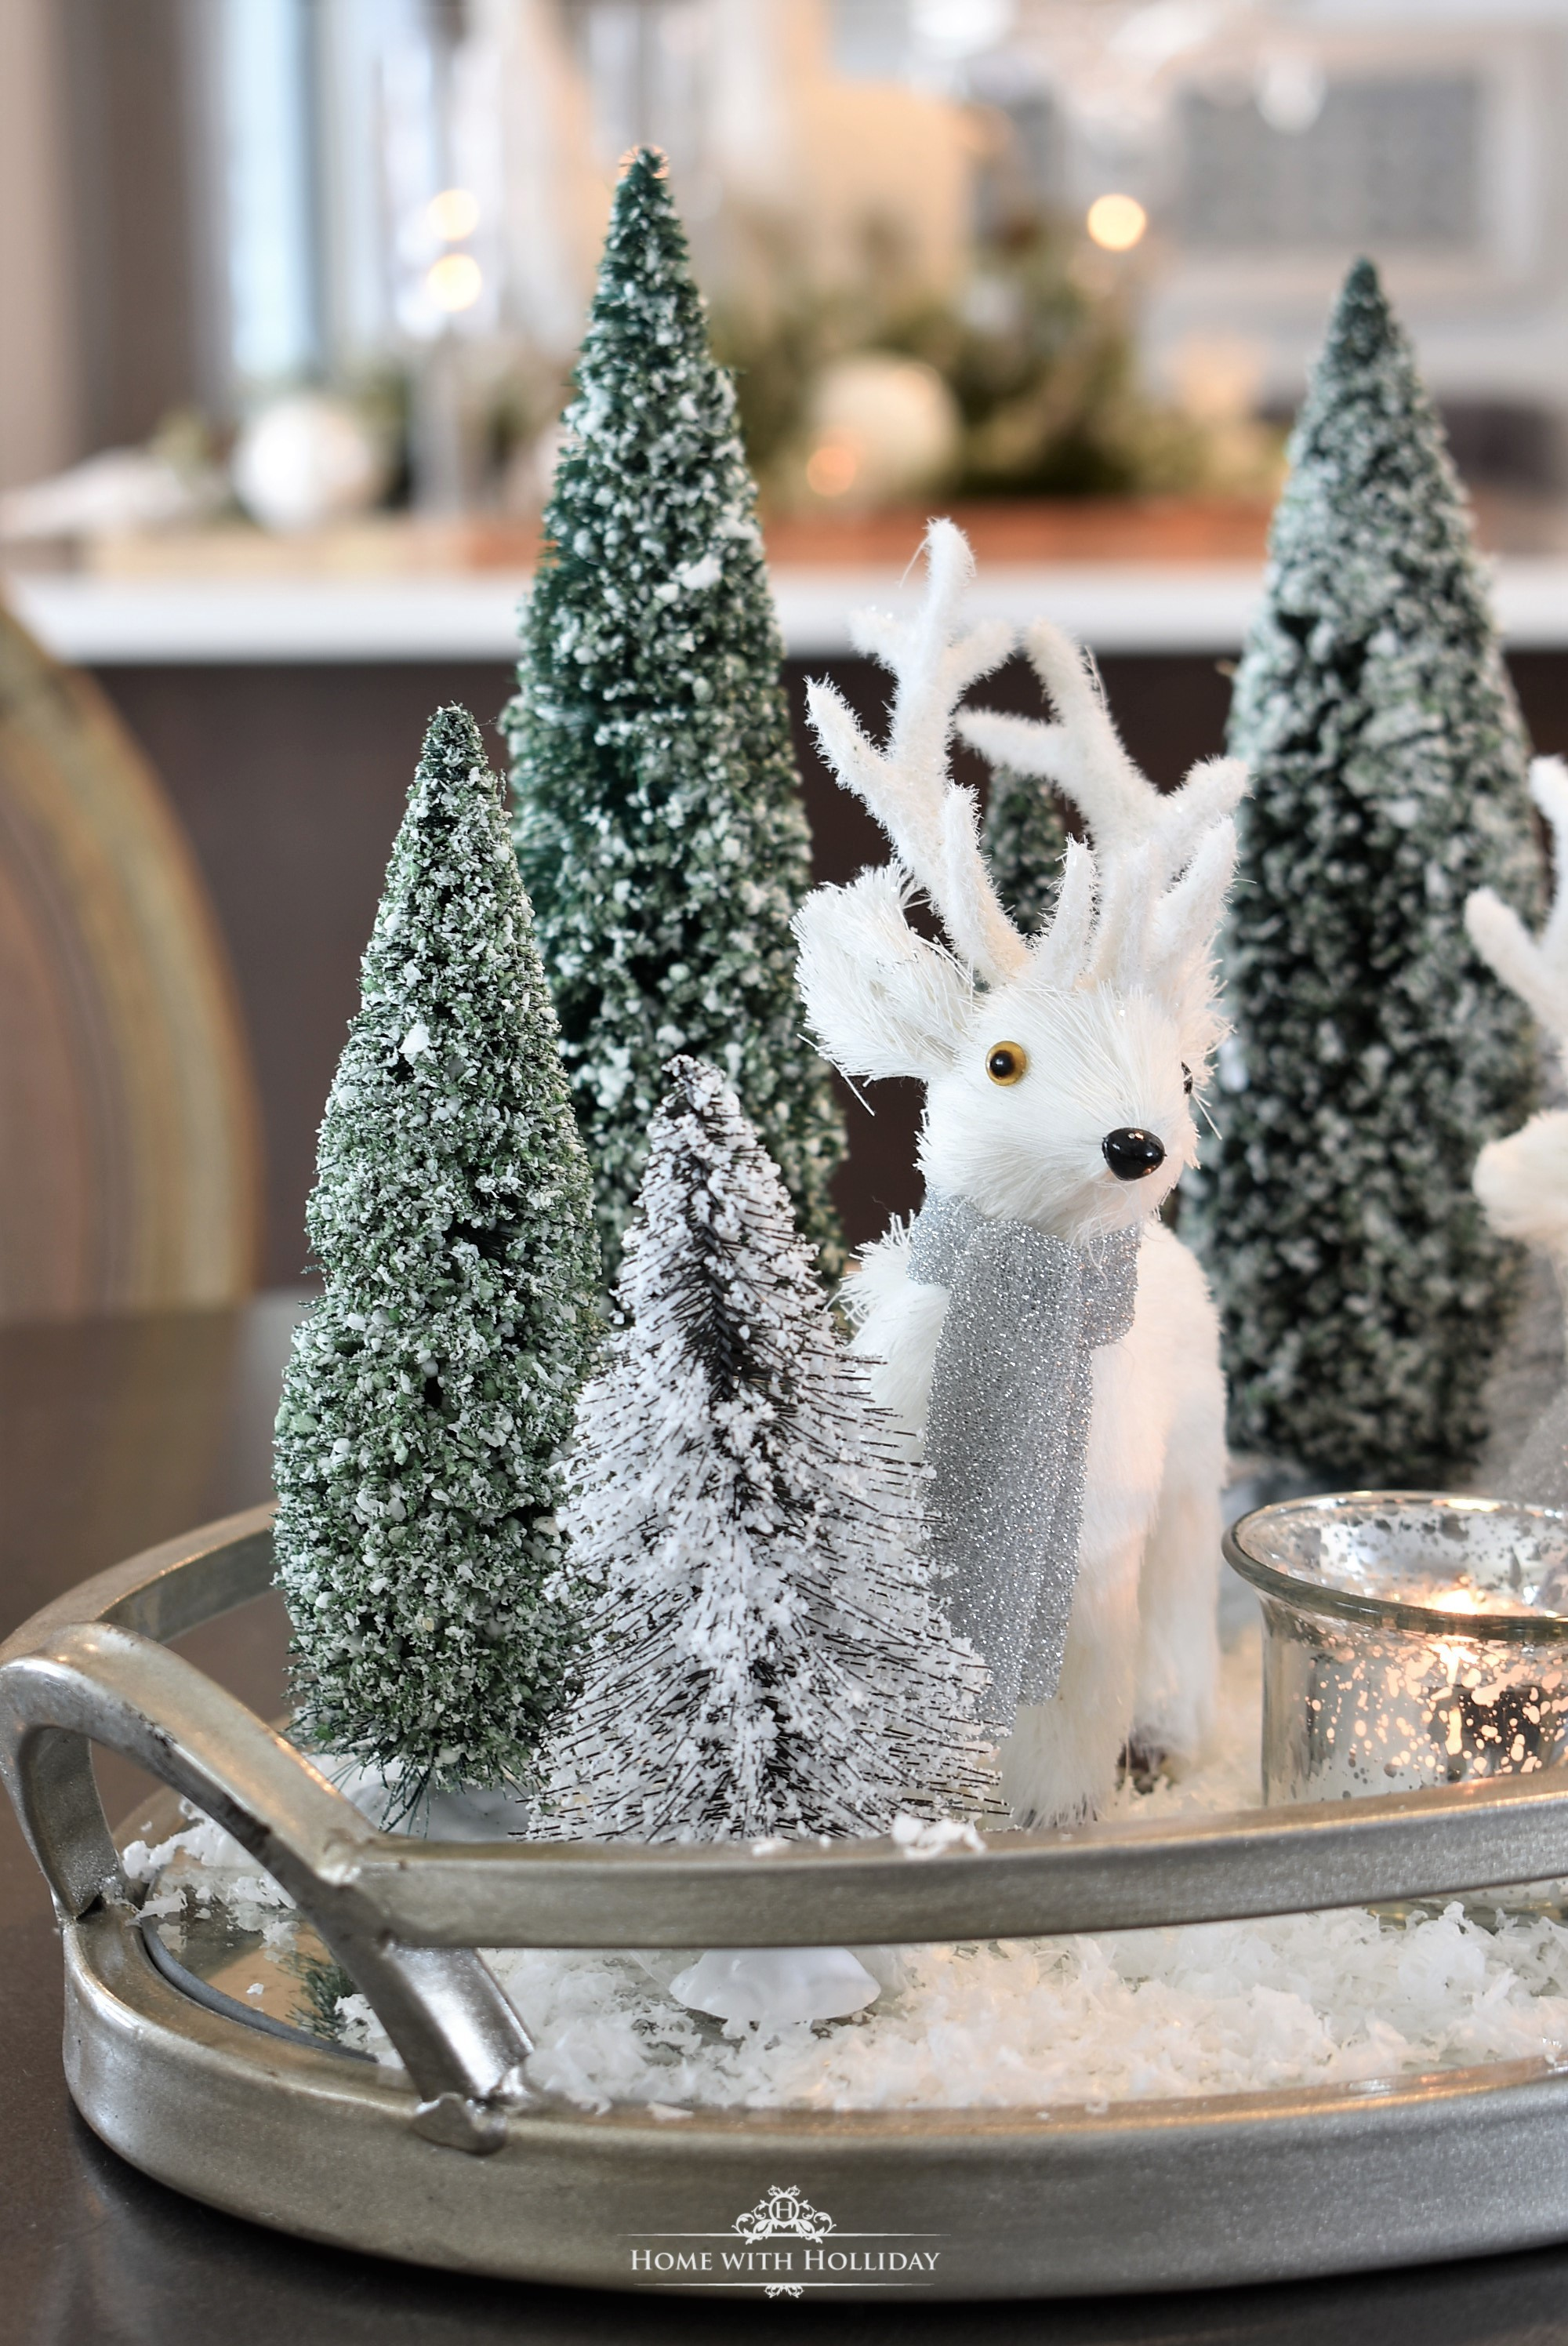 Our Christmas Home Tour - Tiny Winter White Christmas Centerpiece - Home with Holliday